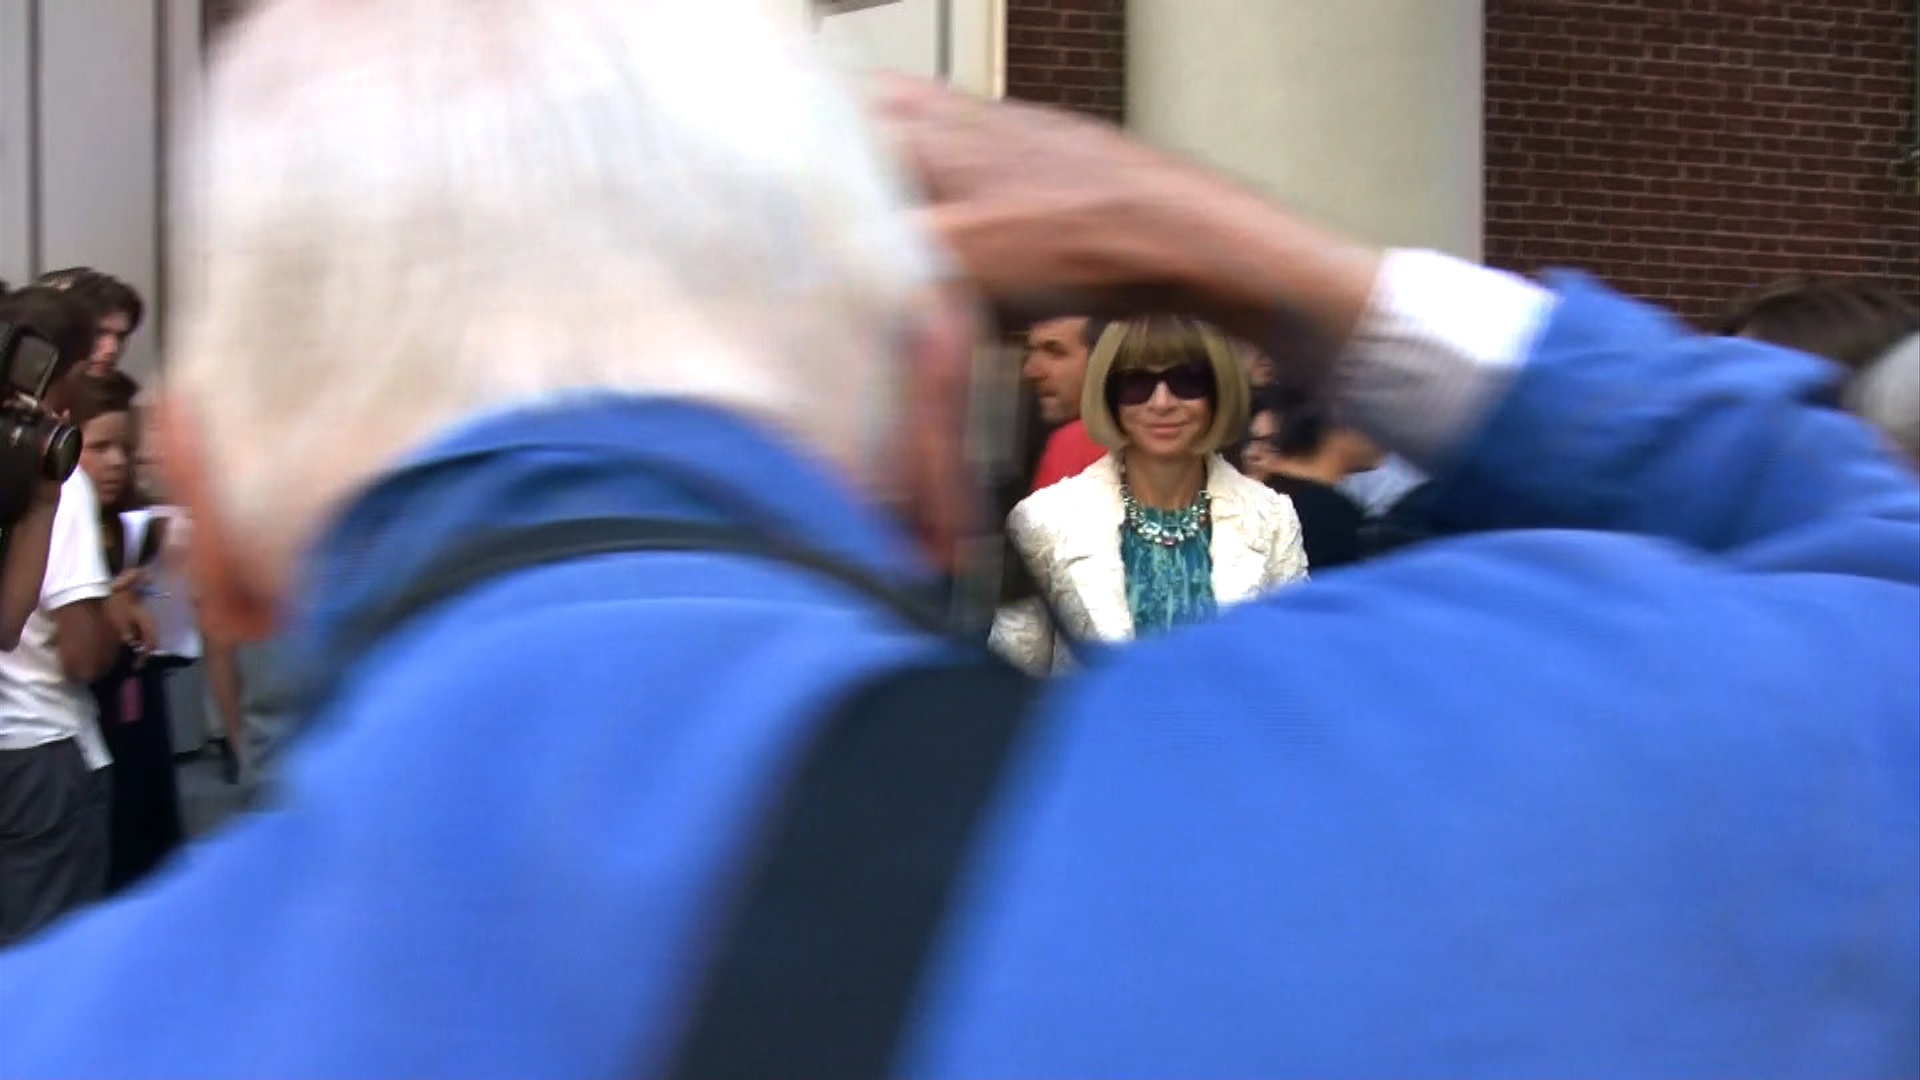 Bill Cunningham photographing  Vogue  editor Anna Wintour, in BILL CUNNINGHAM NEW YORK. A film by Richard Press. A Zeitgeist Films release. Photo credit: First Thought Films / Zeitgeist Films